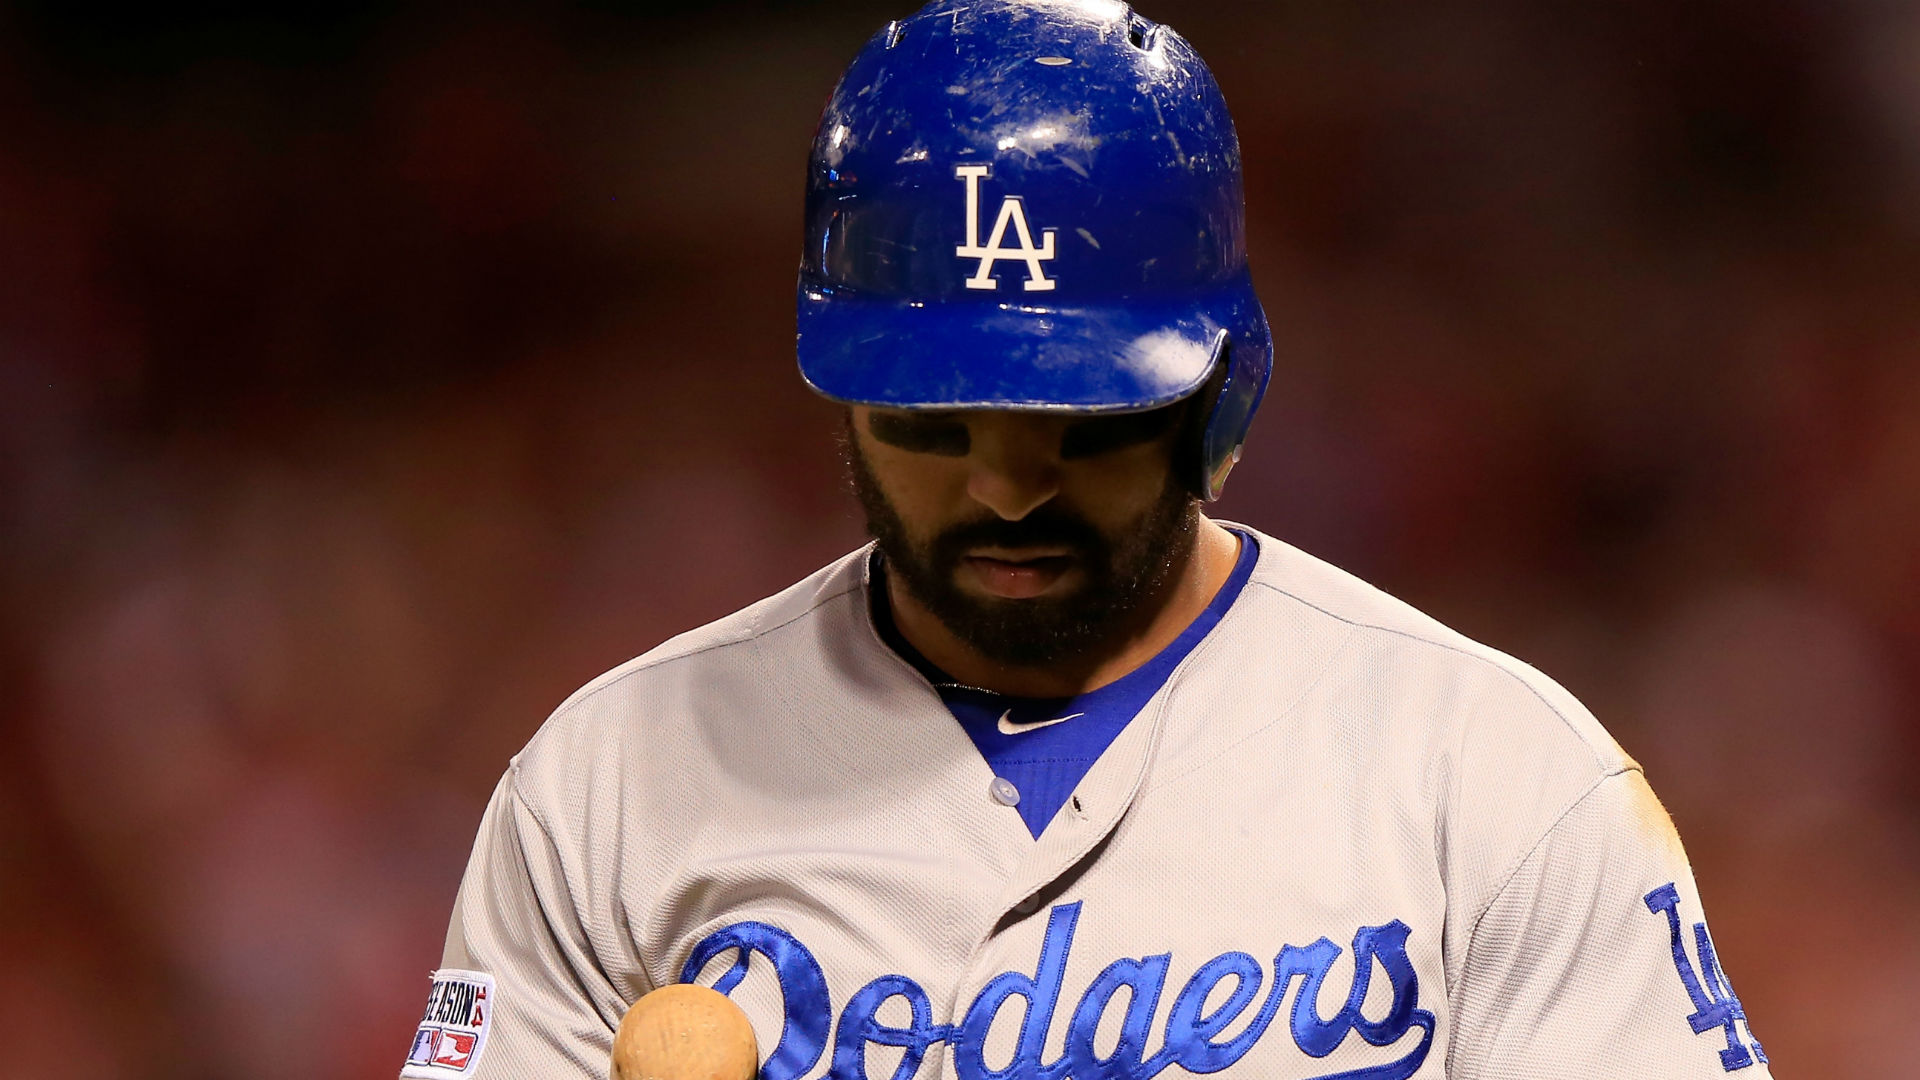 matt-kemp-121614-getty-ftr-us.jpg